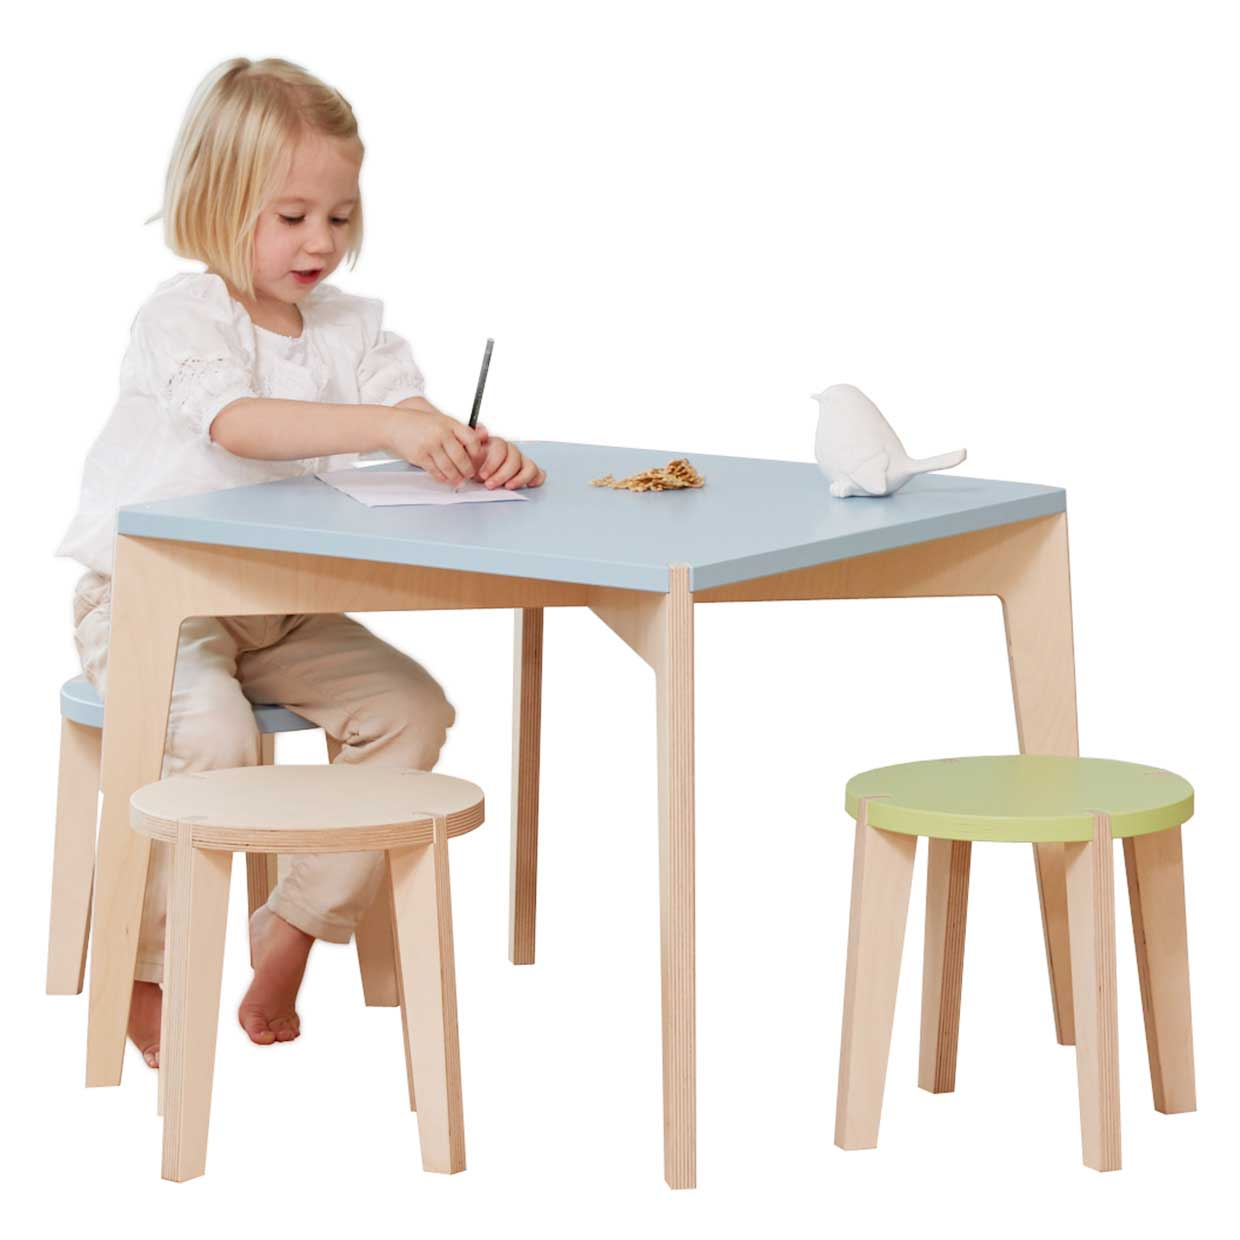 28 Kids Play Table And Chairs Tables